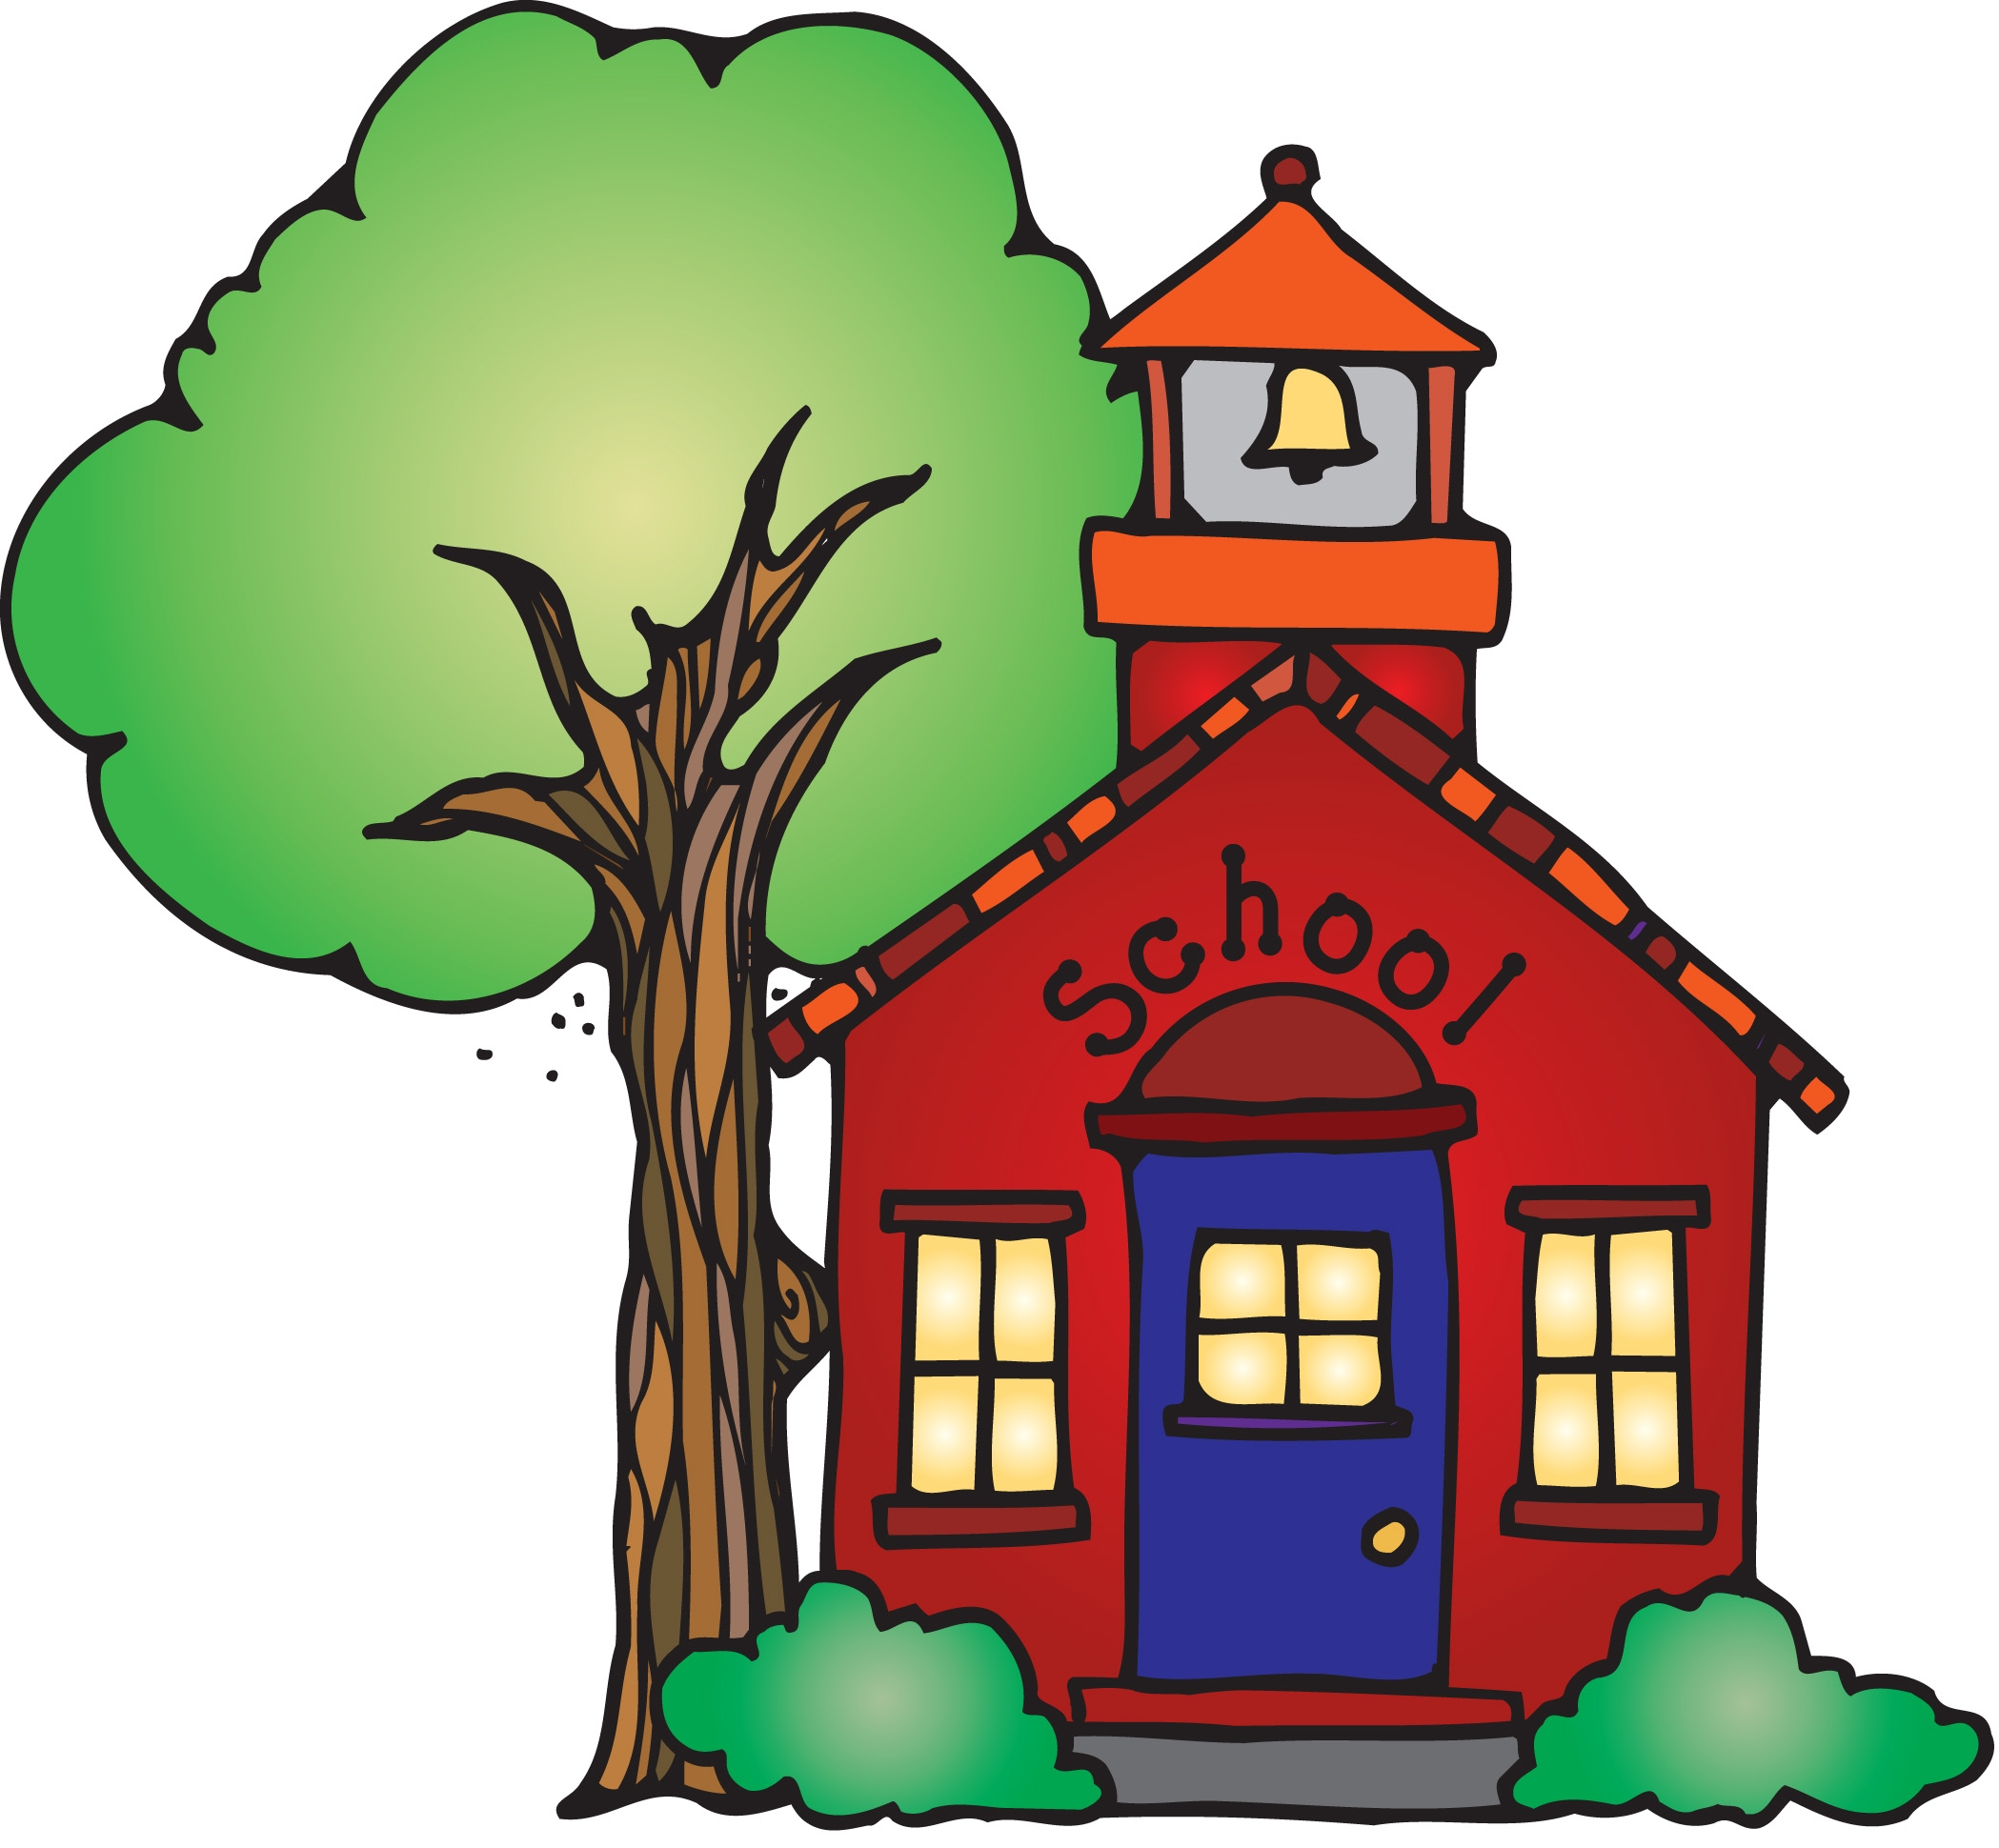 Elementary open house clipart